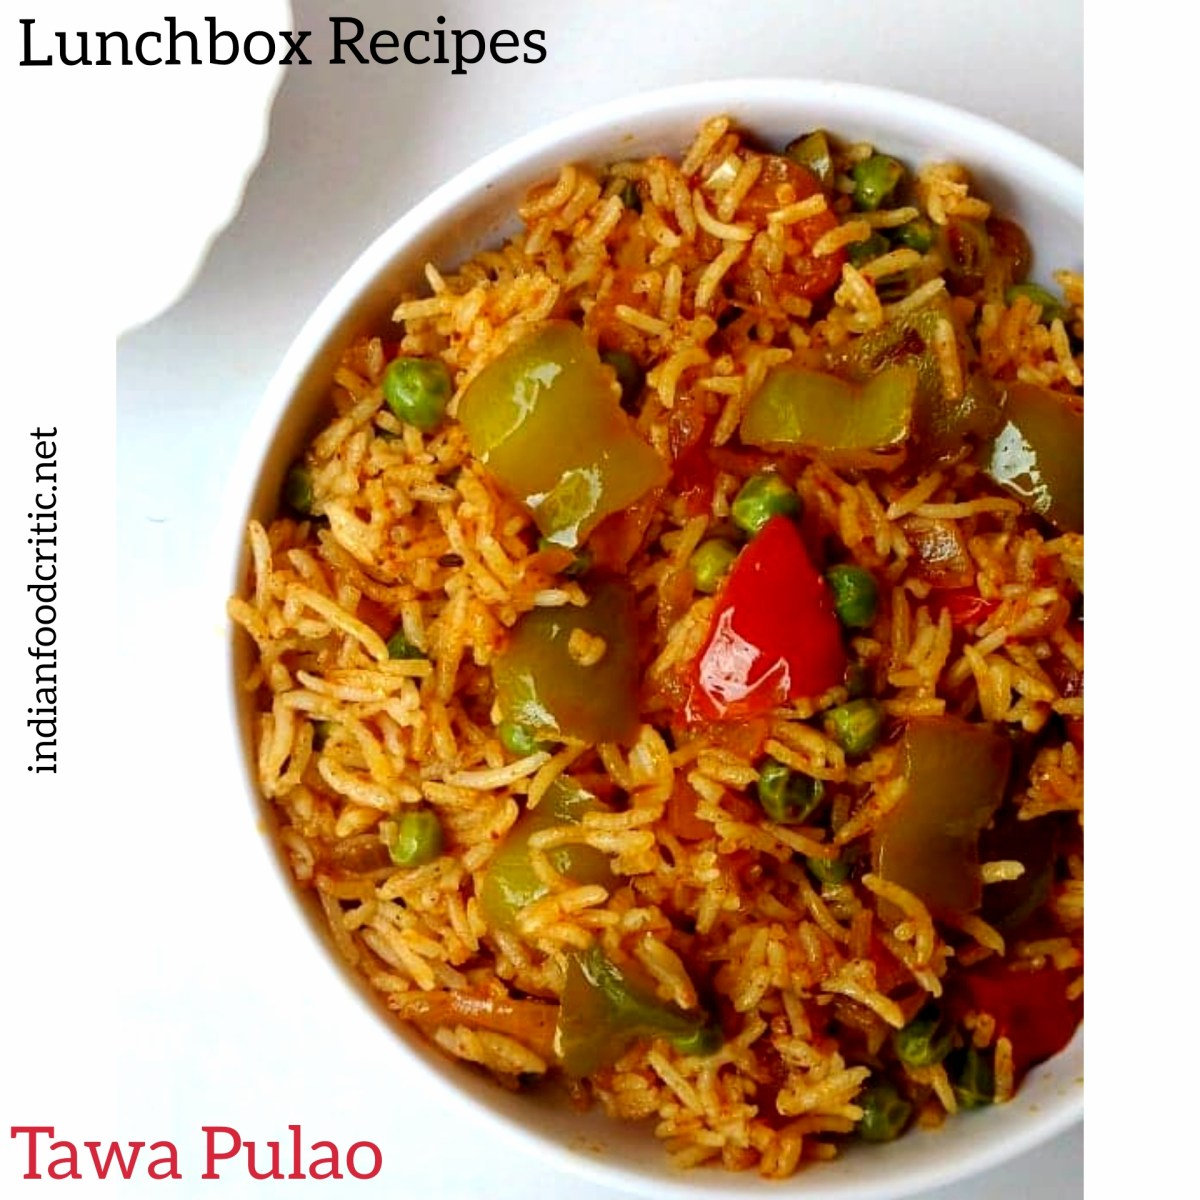 Tawa Pulao Recipe | How to make Mumbai Street Style Tawa Pulao? | 3 Must Try Recipes | 4.7/5.0